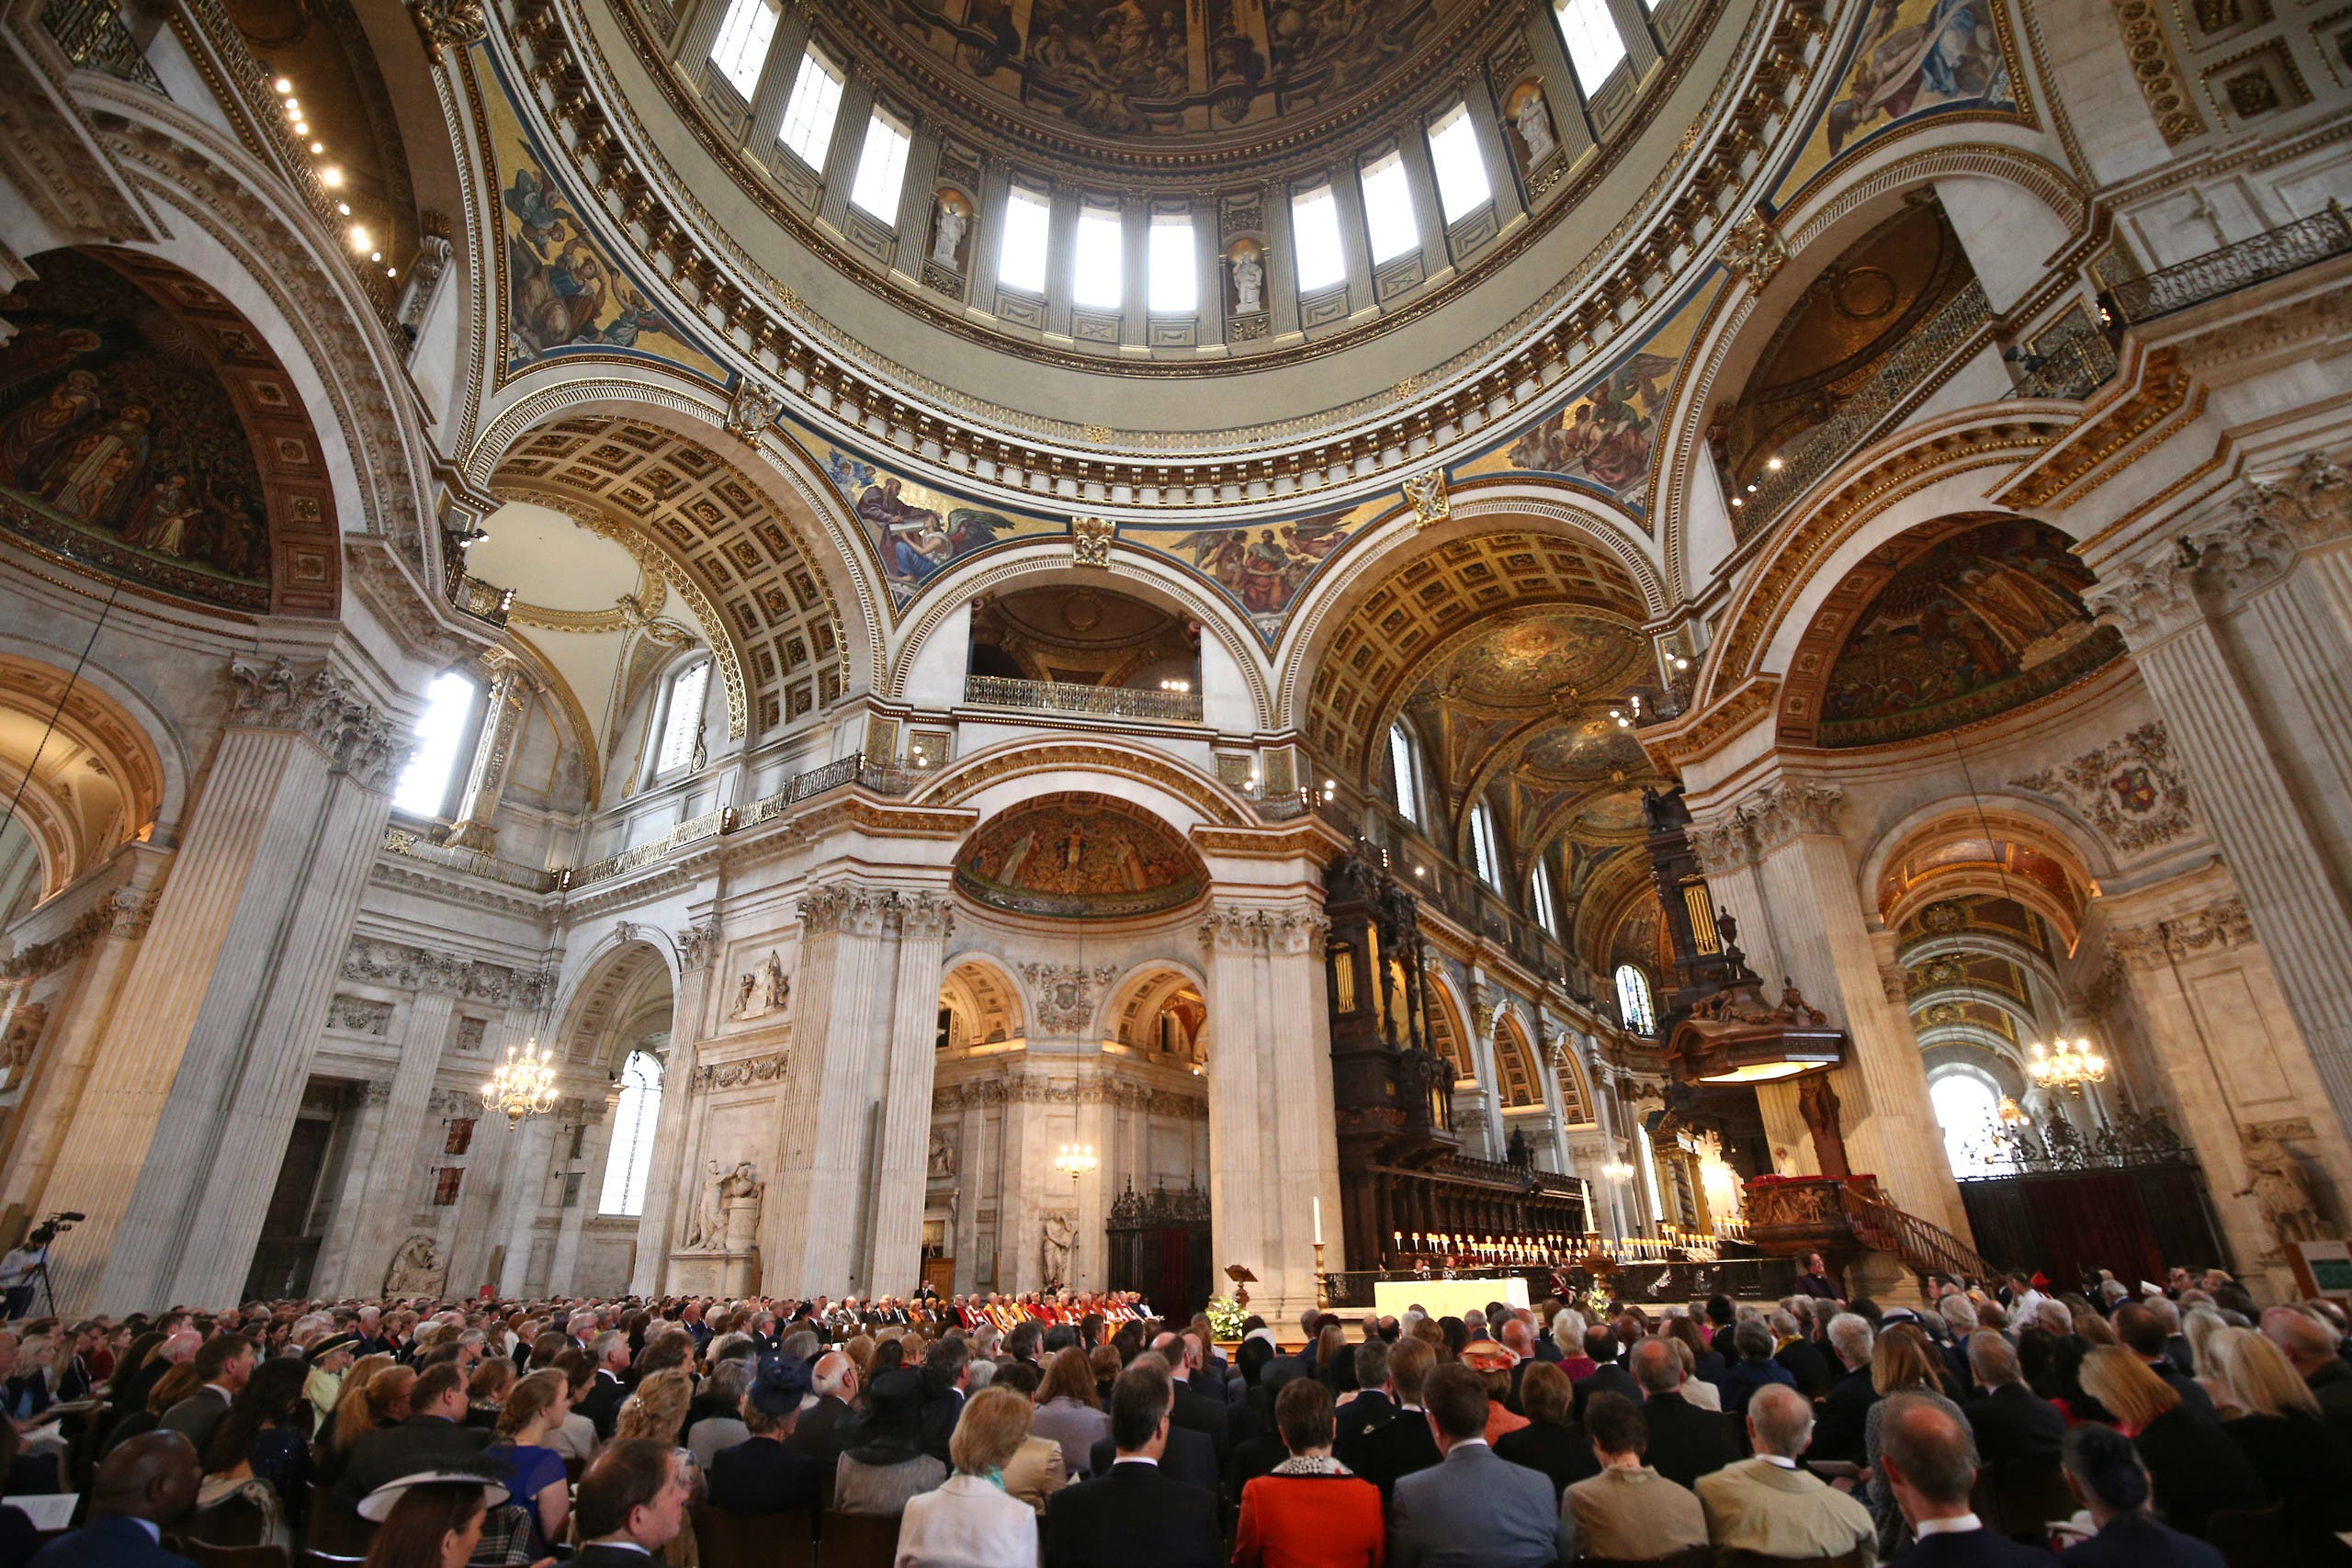 St Paul's Cathedral in London on May 12, 2018. (File photo: AP)